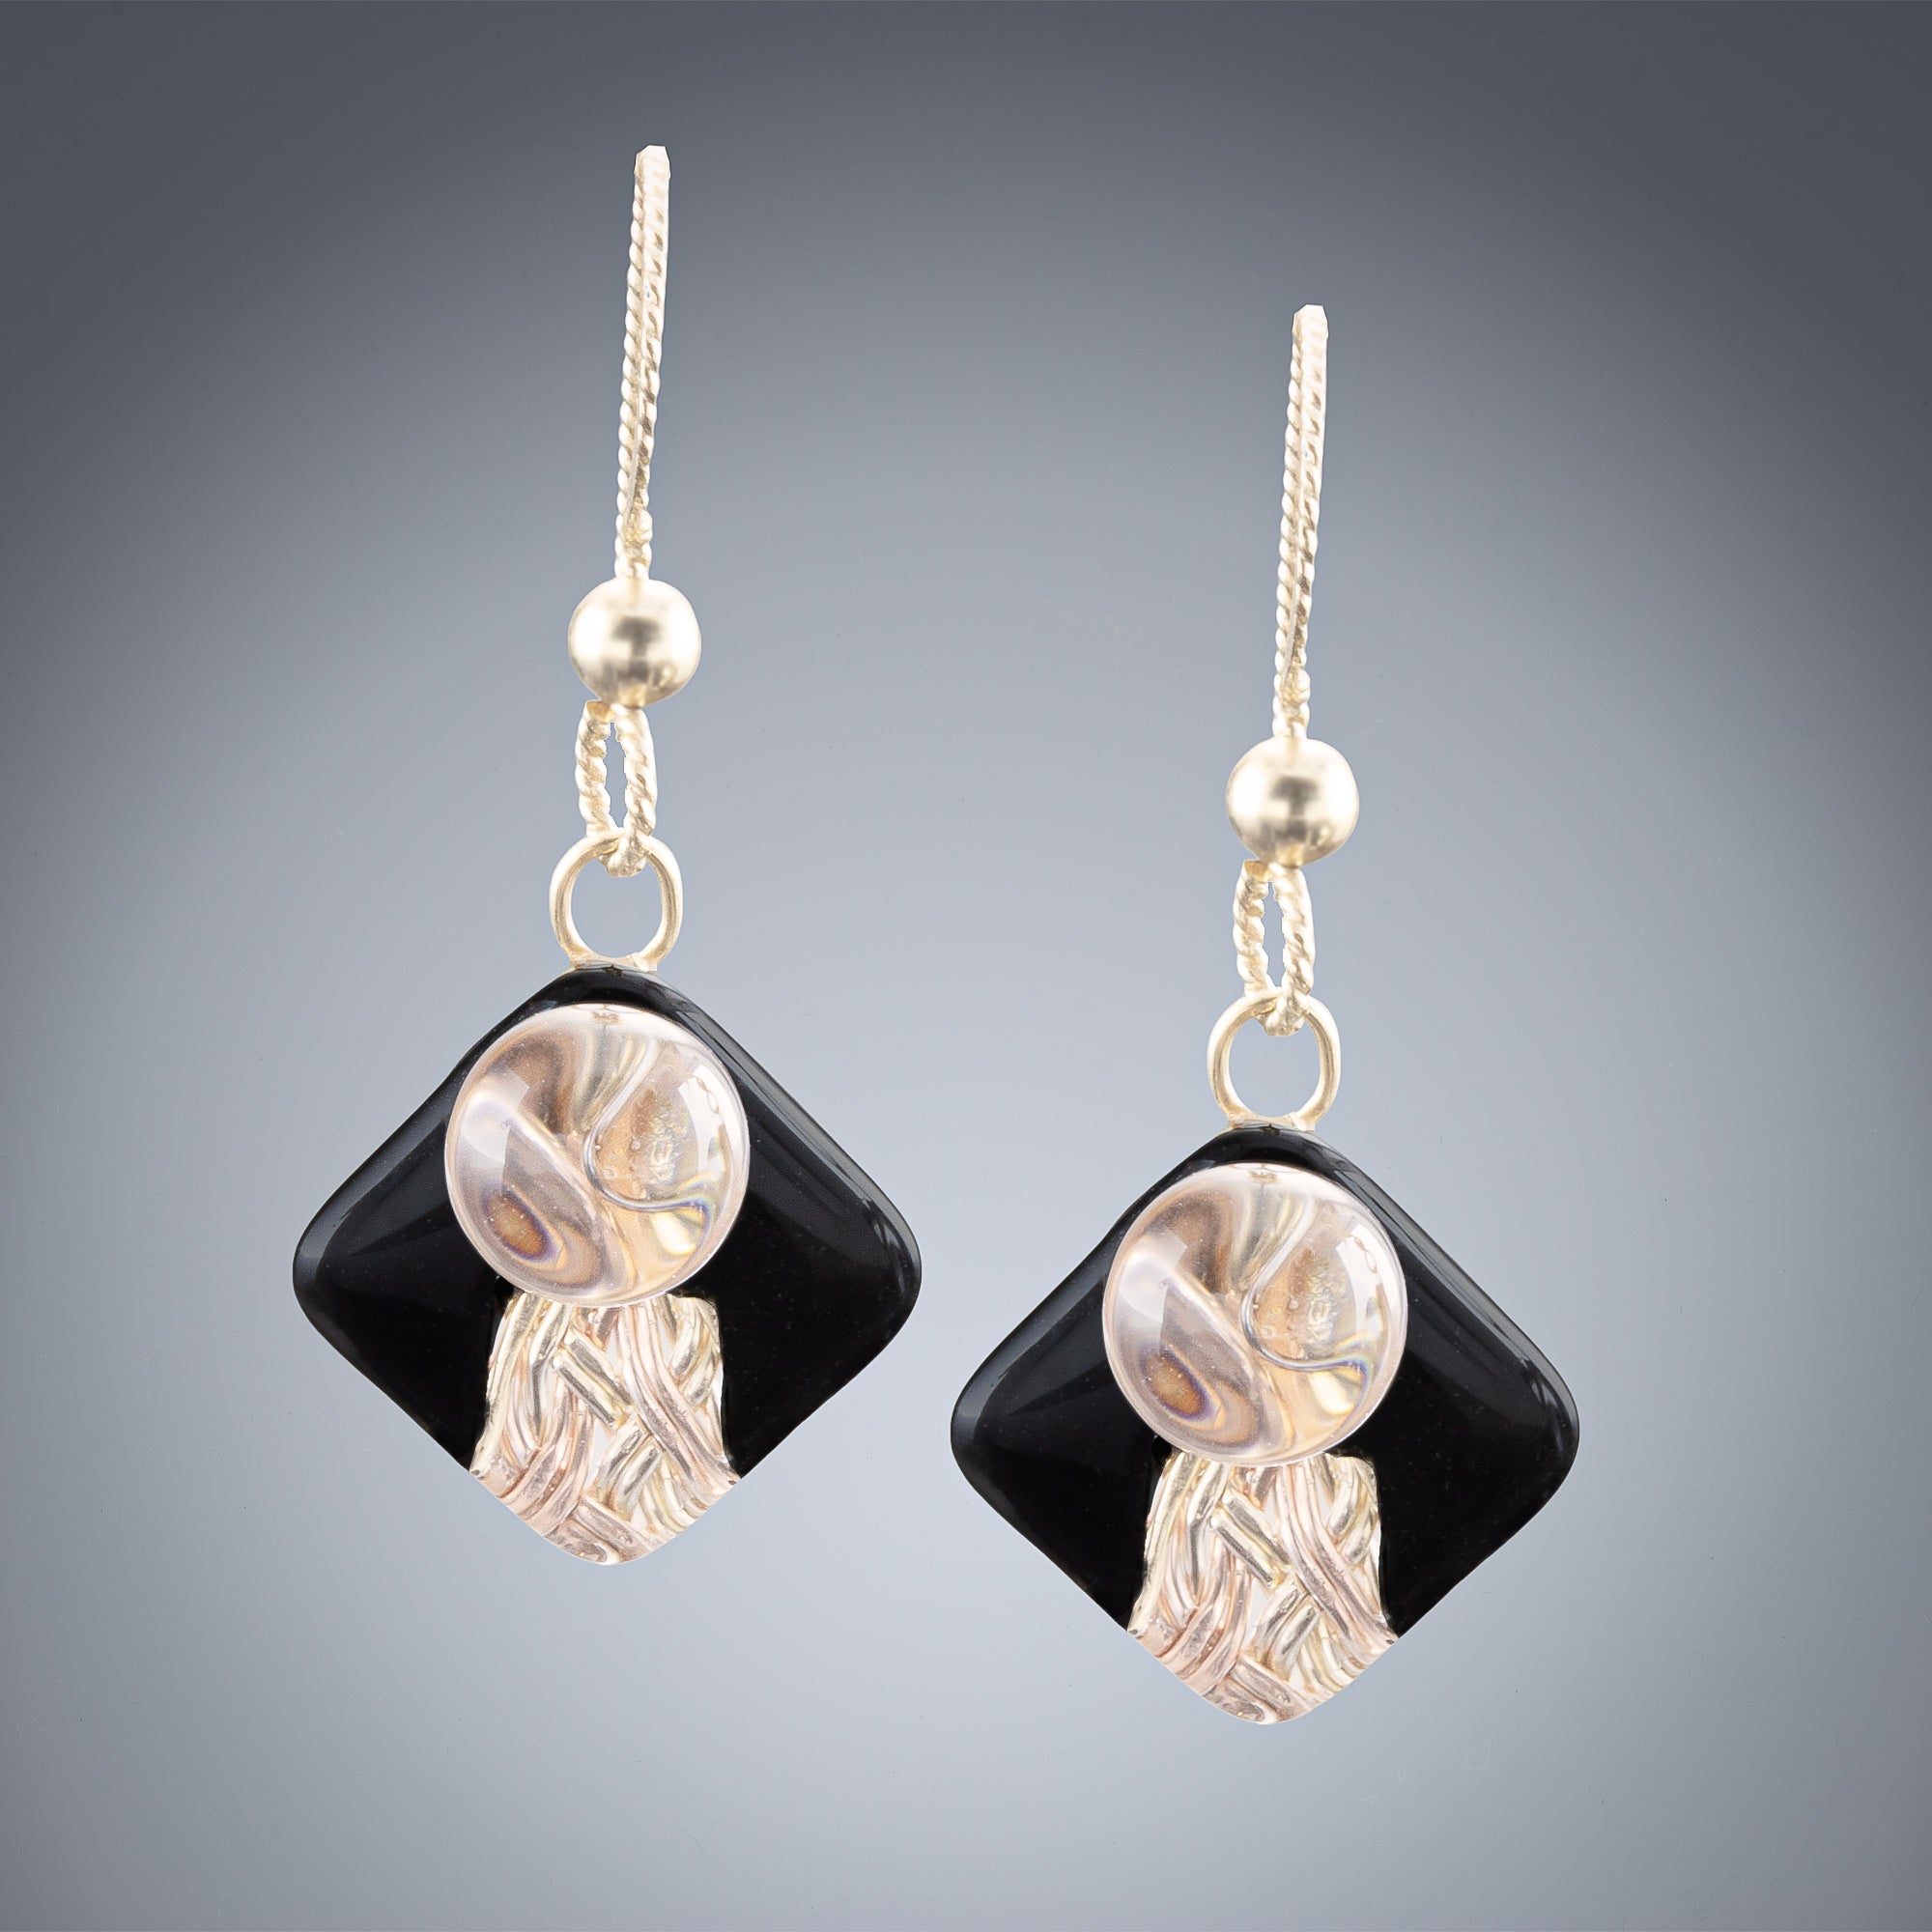 Handwoven Black and Gold Art Deco Inspired Earrings in both 14K Yellow and Rose Gold Fill